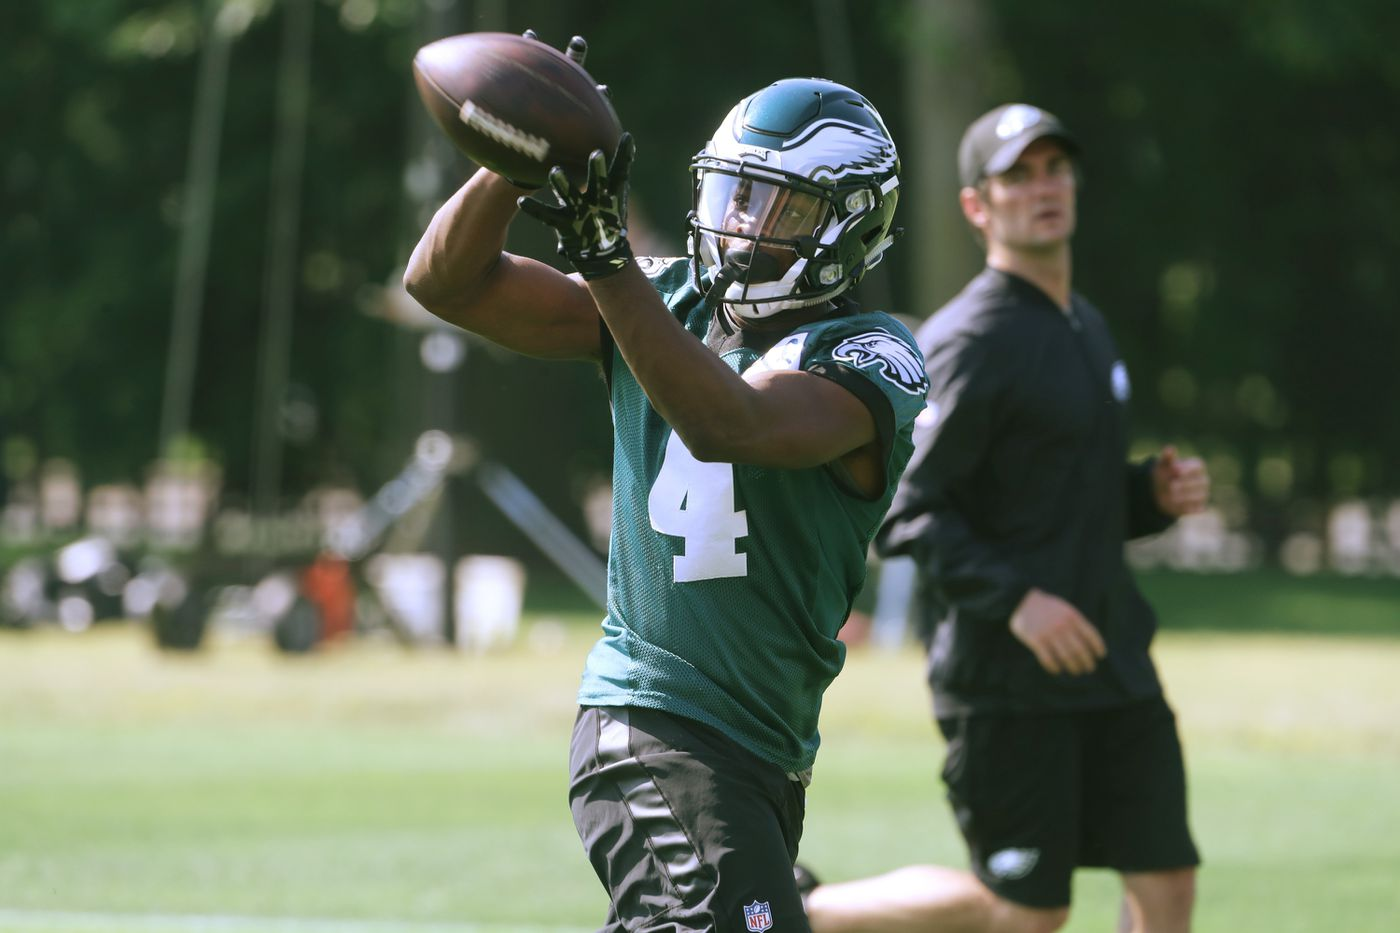 Eagles receiver Greg Ward determined to make 53-man roster